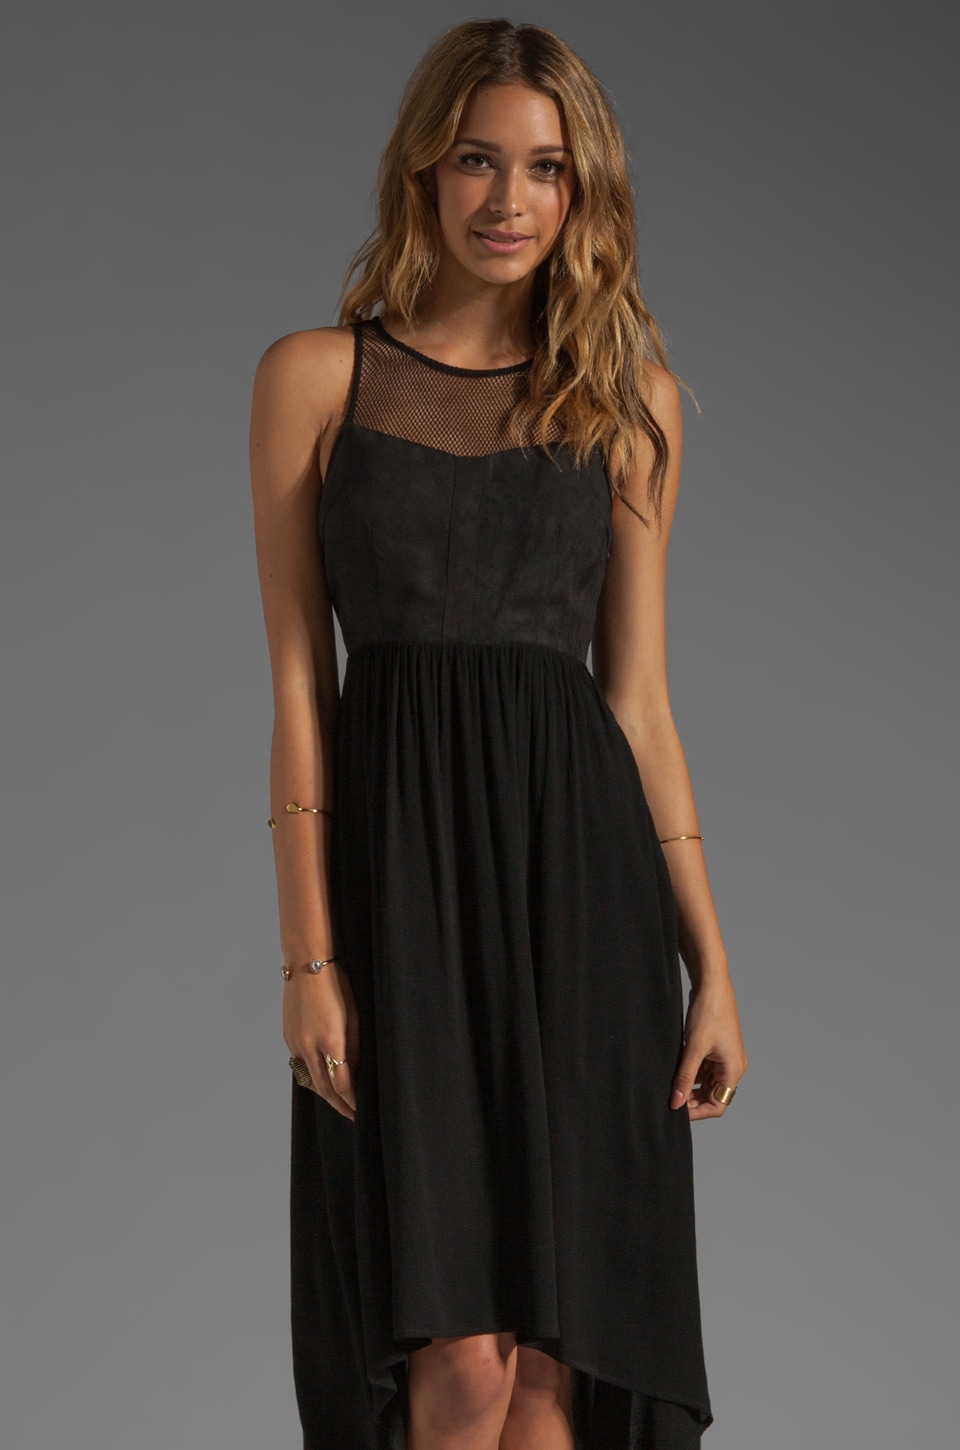 Ladakh Upstate Dress in Black